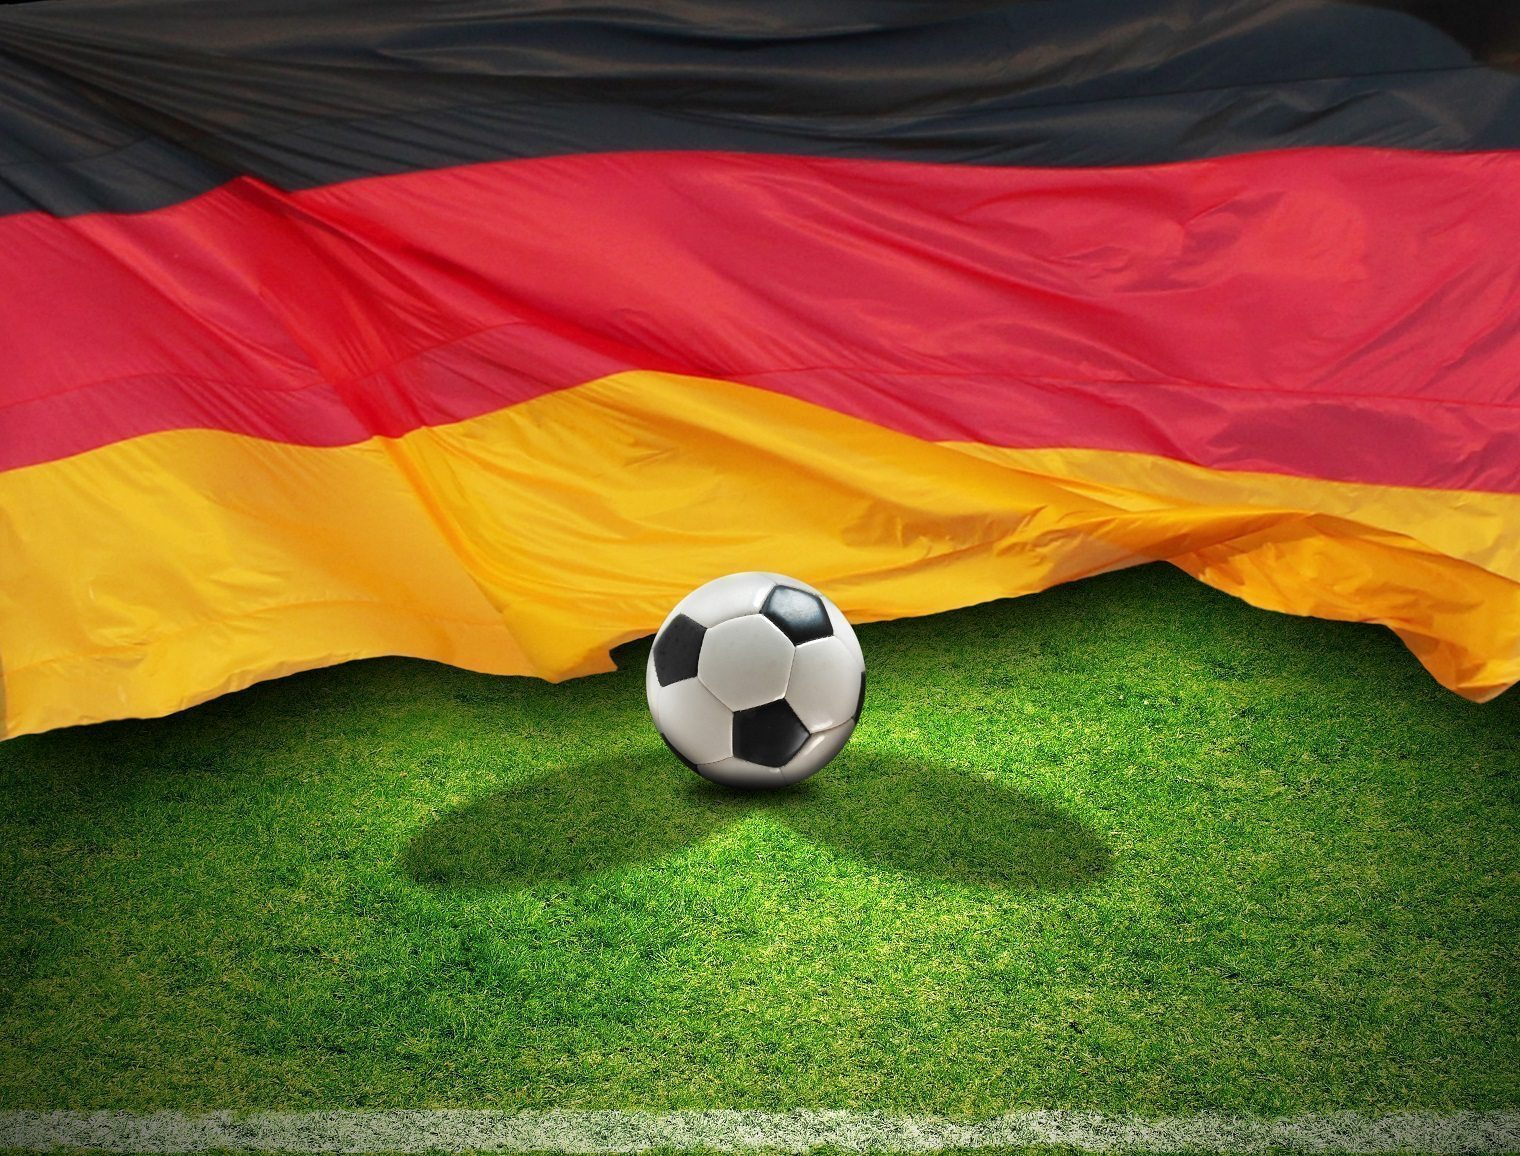 Germany wins the Worldcup 2014